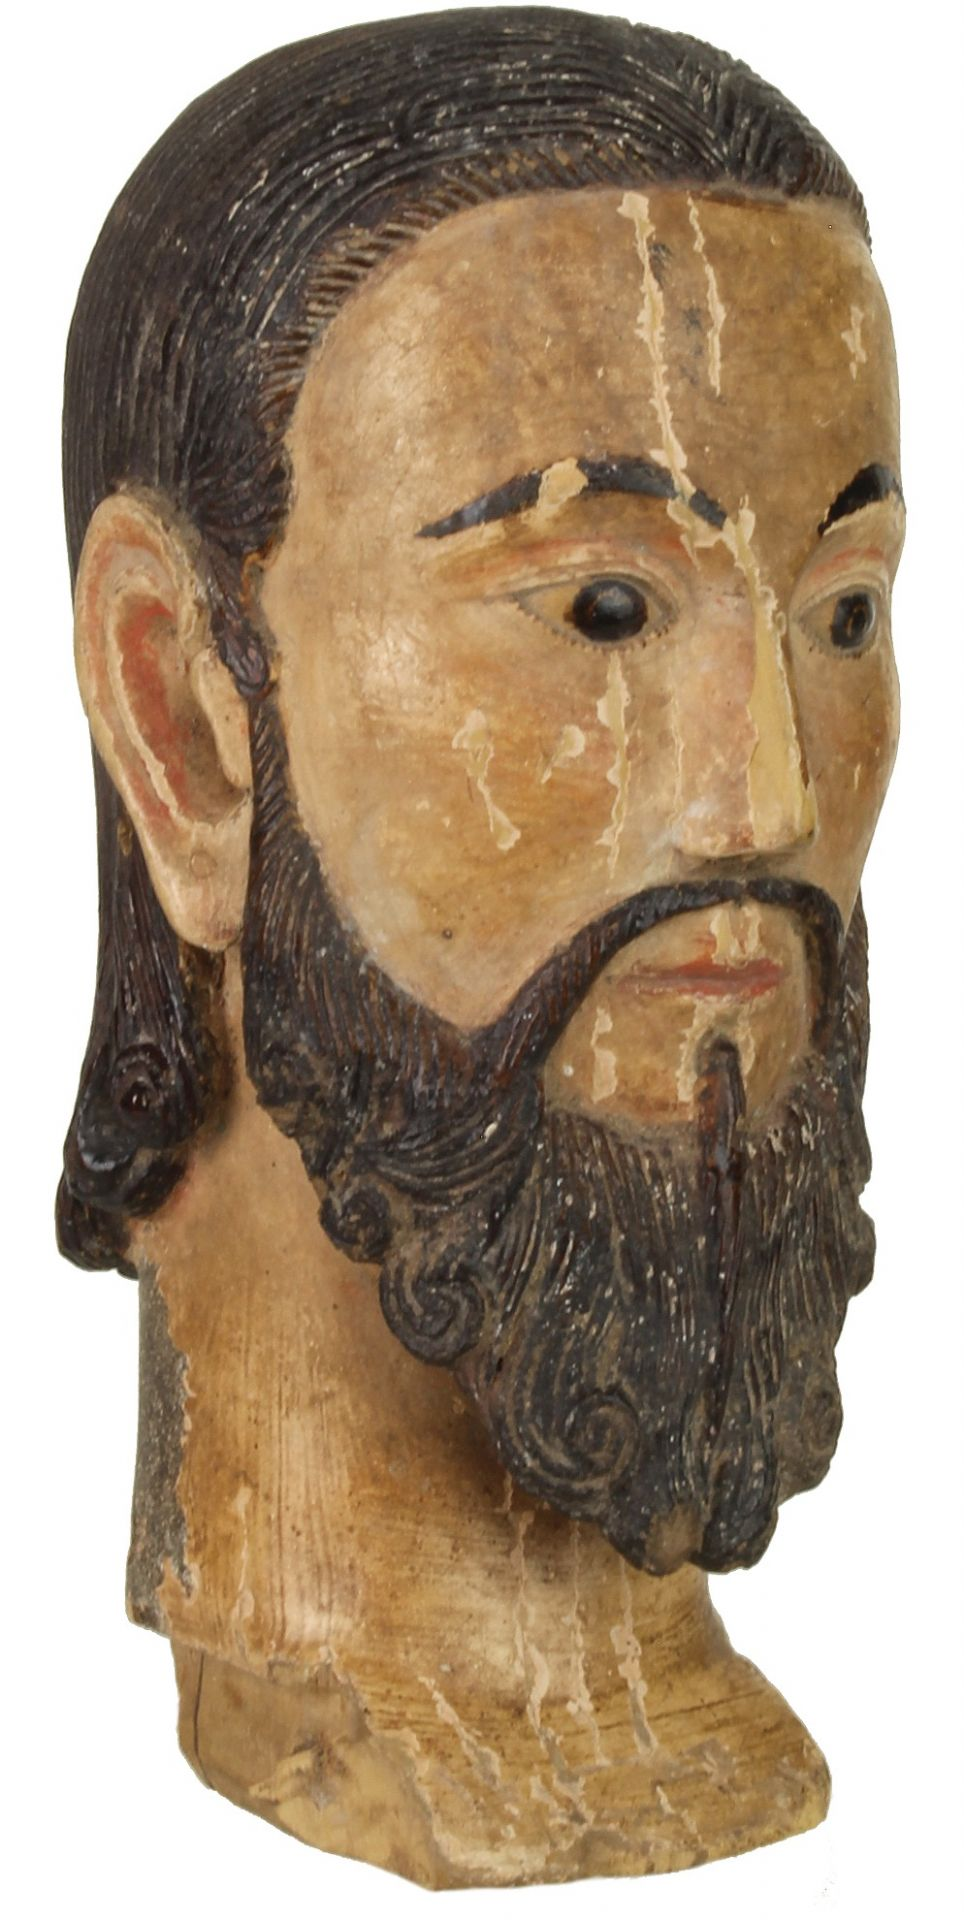 Antique Catholic Saint Figure Head - Viet Nam